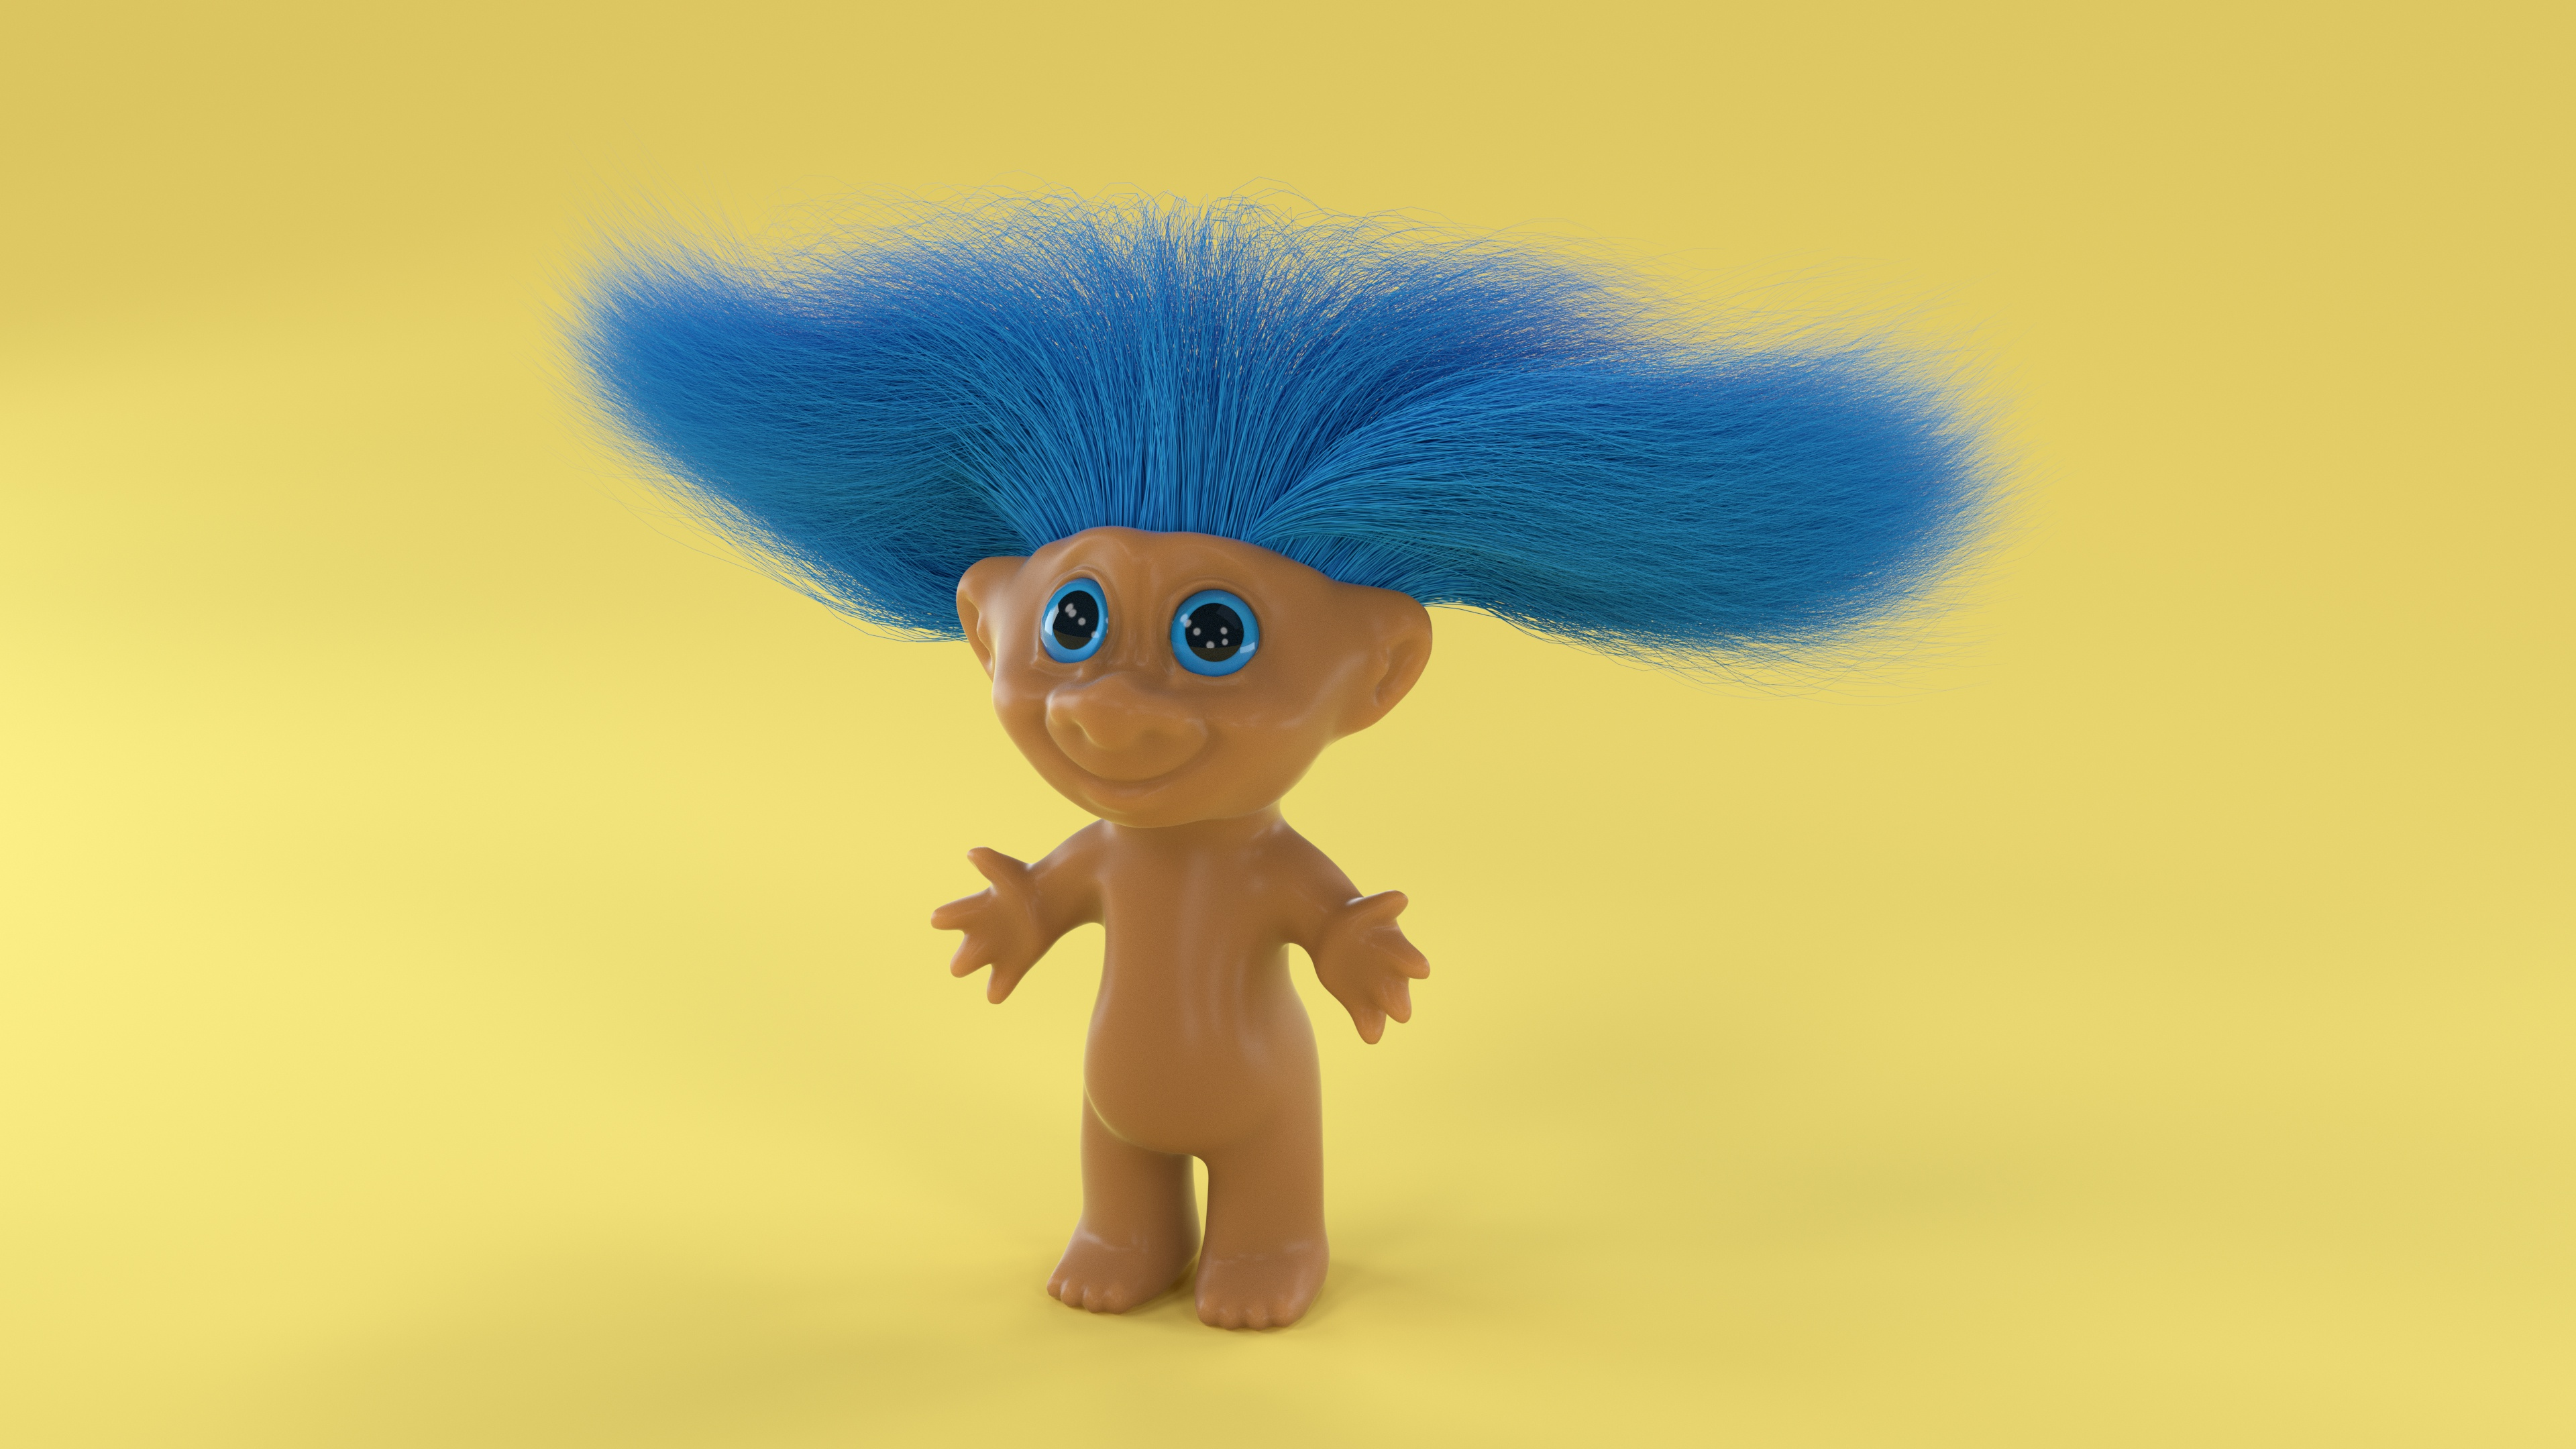 Troll doll 3d type by noah camp